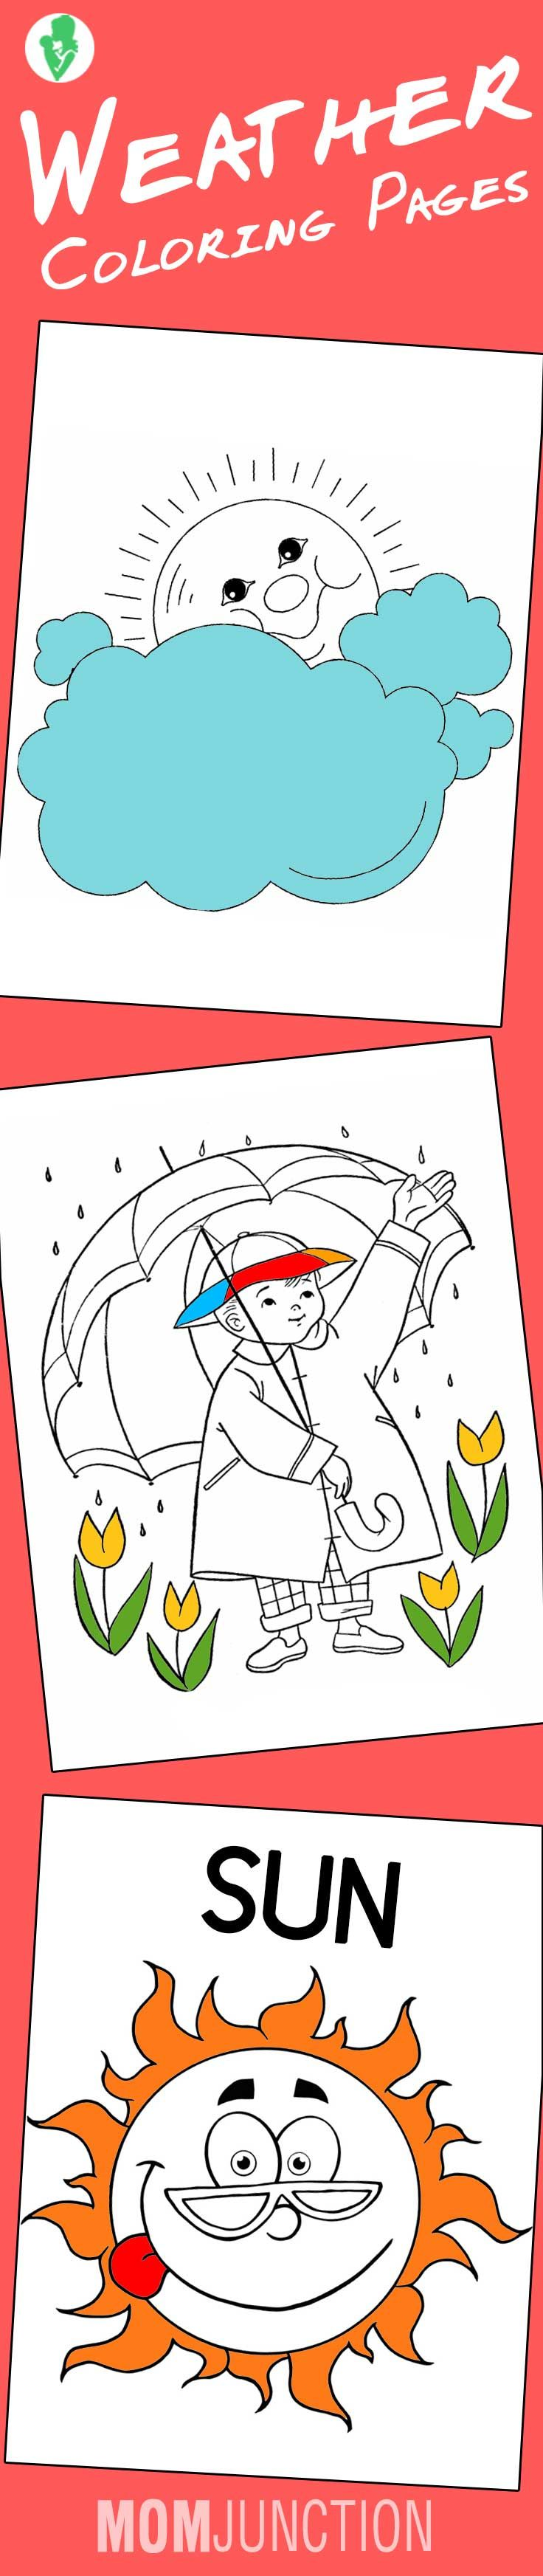 10 Amazing Weather Coloring Pages For Your Toddler These Are Sure To